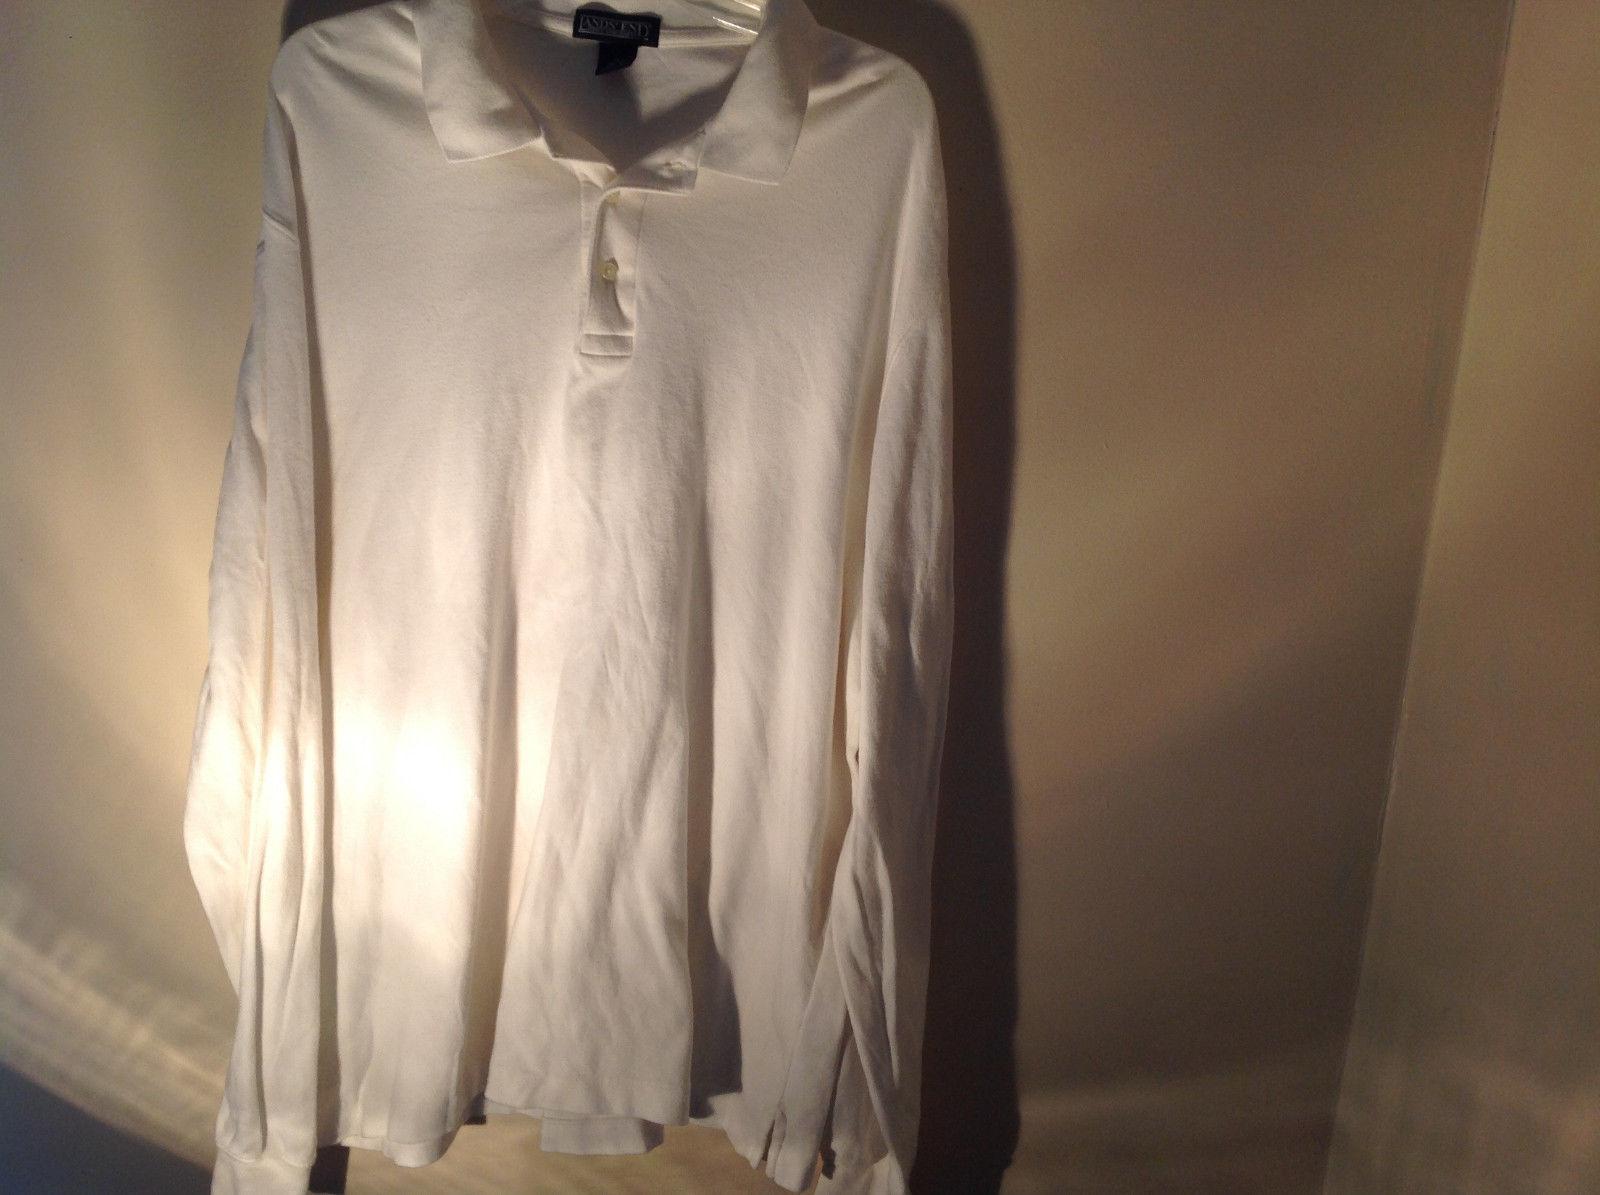 Lands End White Long Sleeve Collared Very Soft Shirt Perfect Condition Size XL